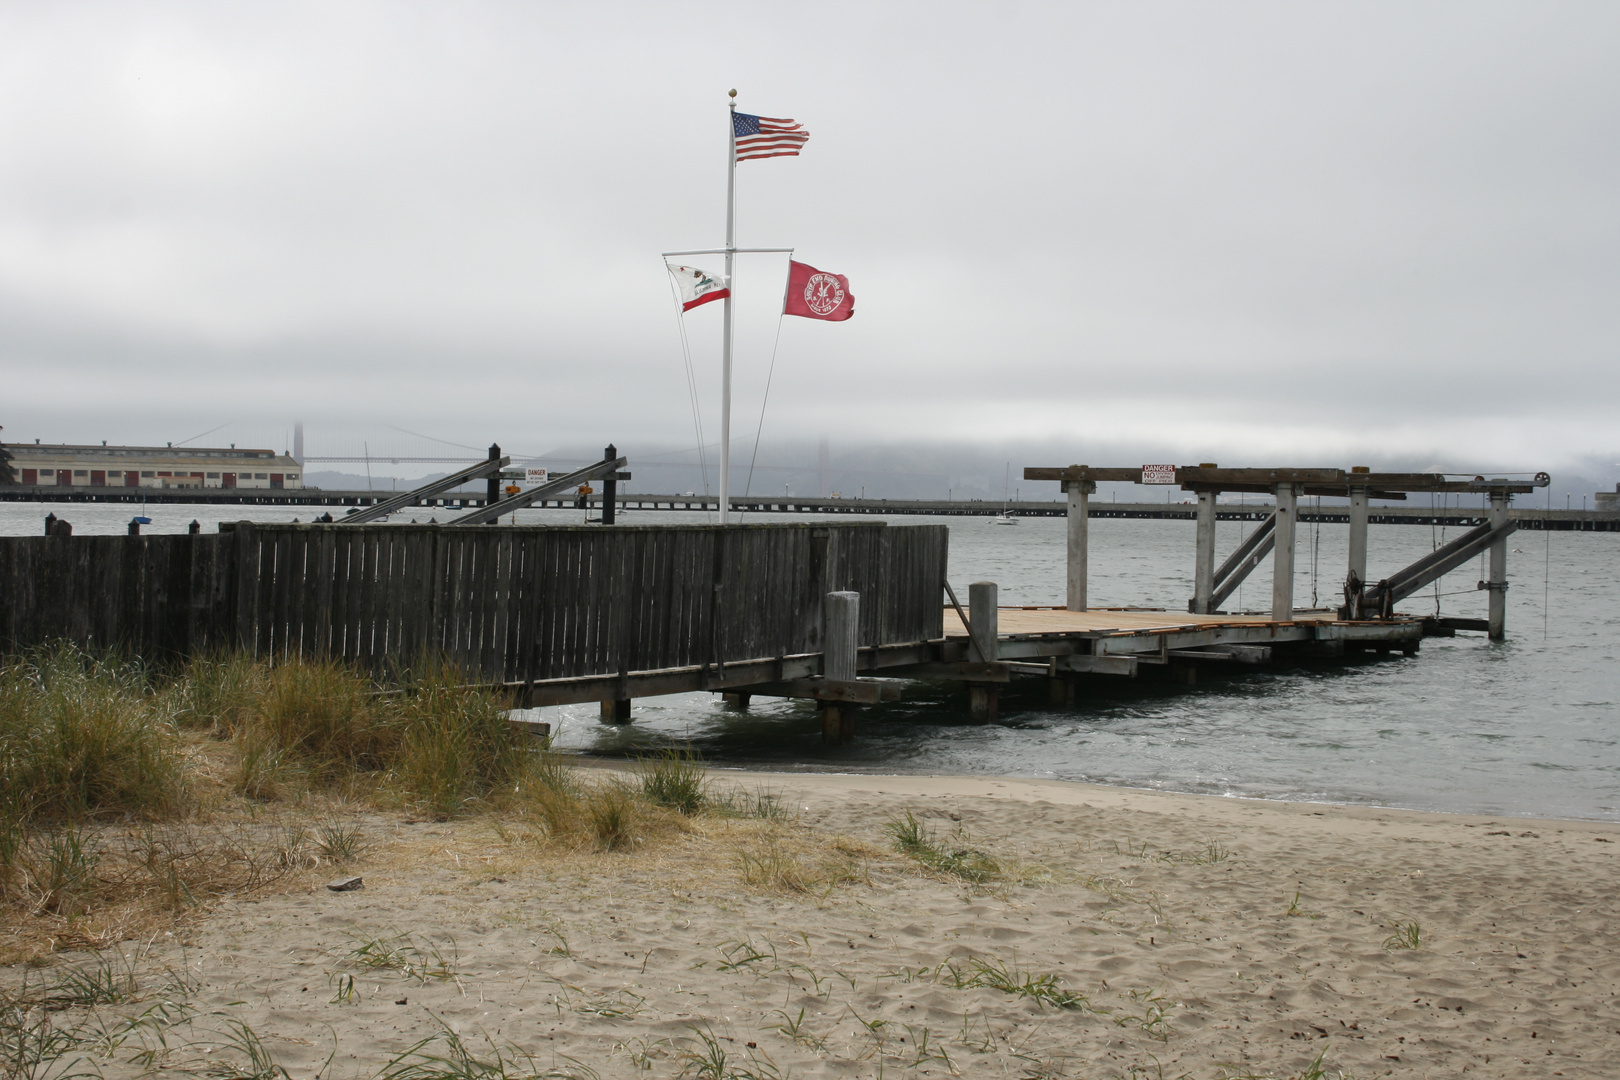 Looking from Fisherman's wharf to the GGB during a misty morning